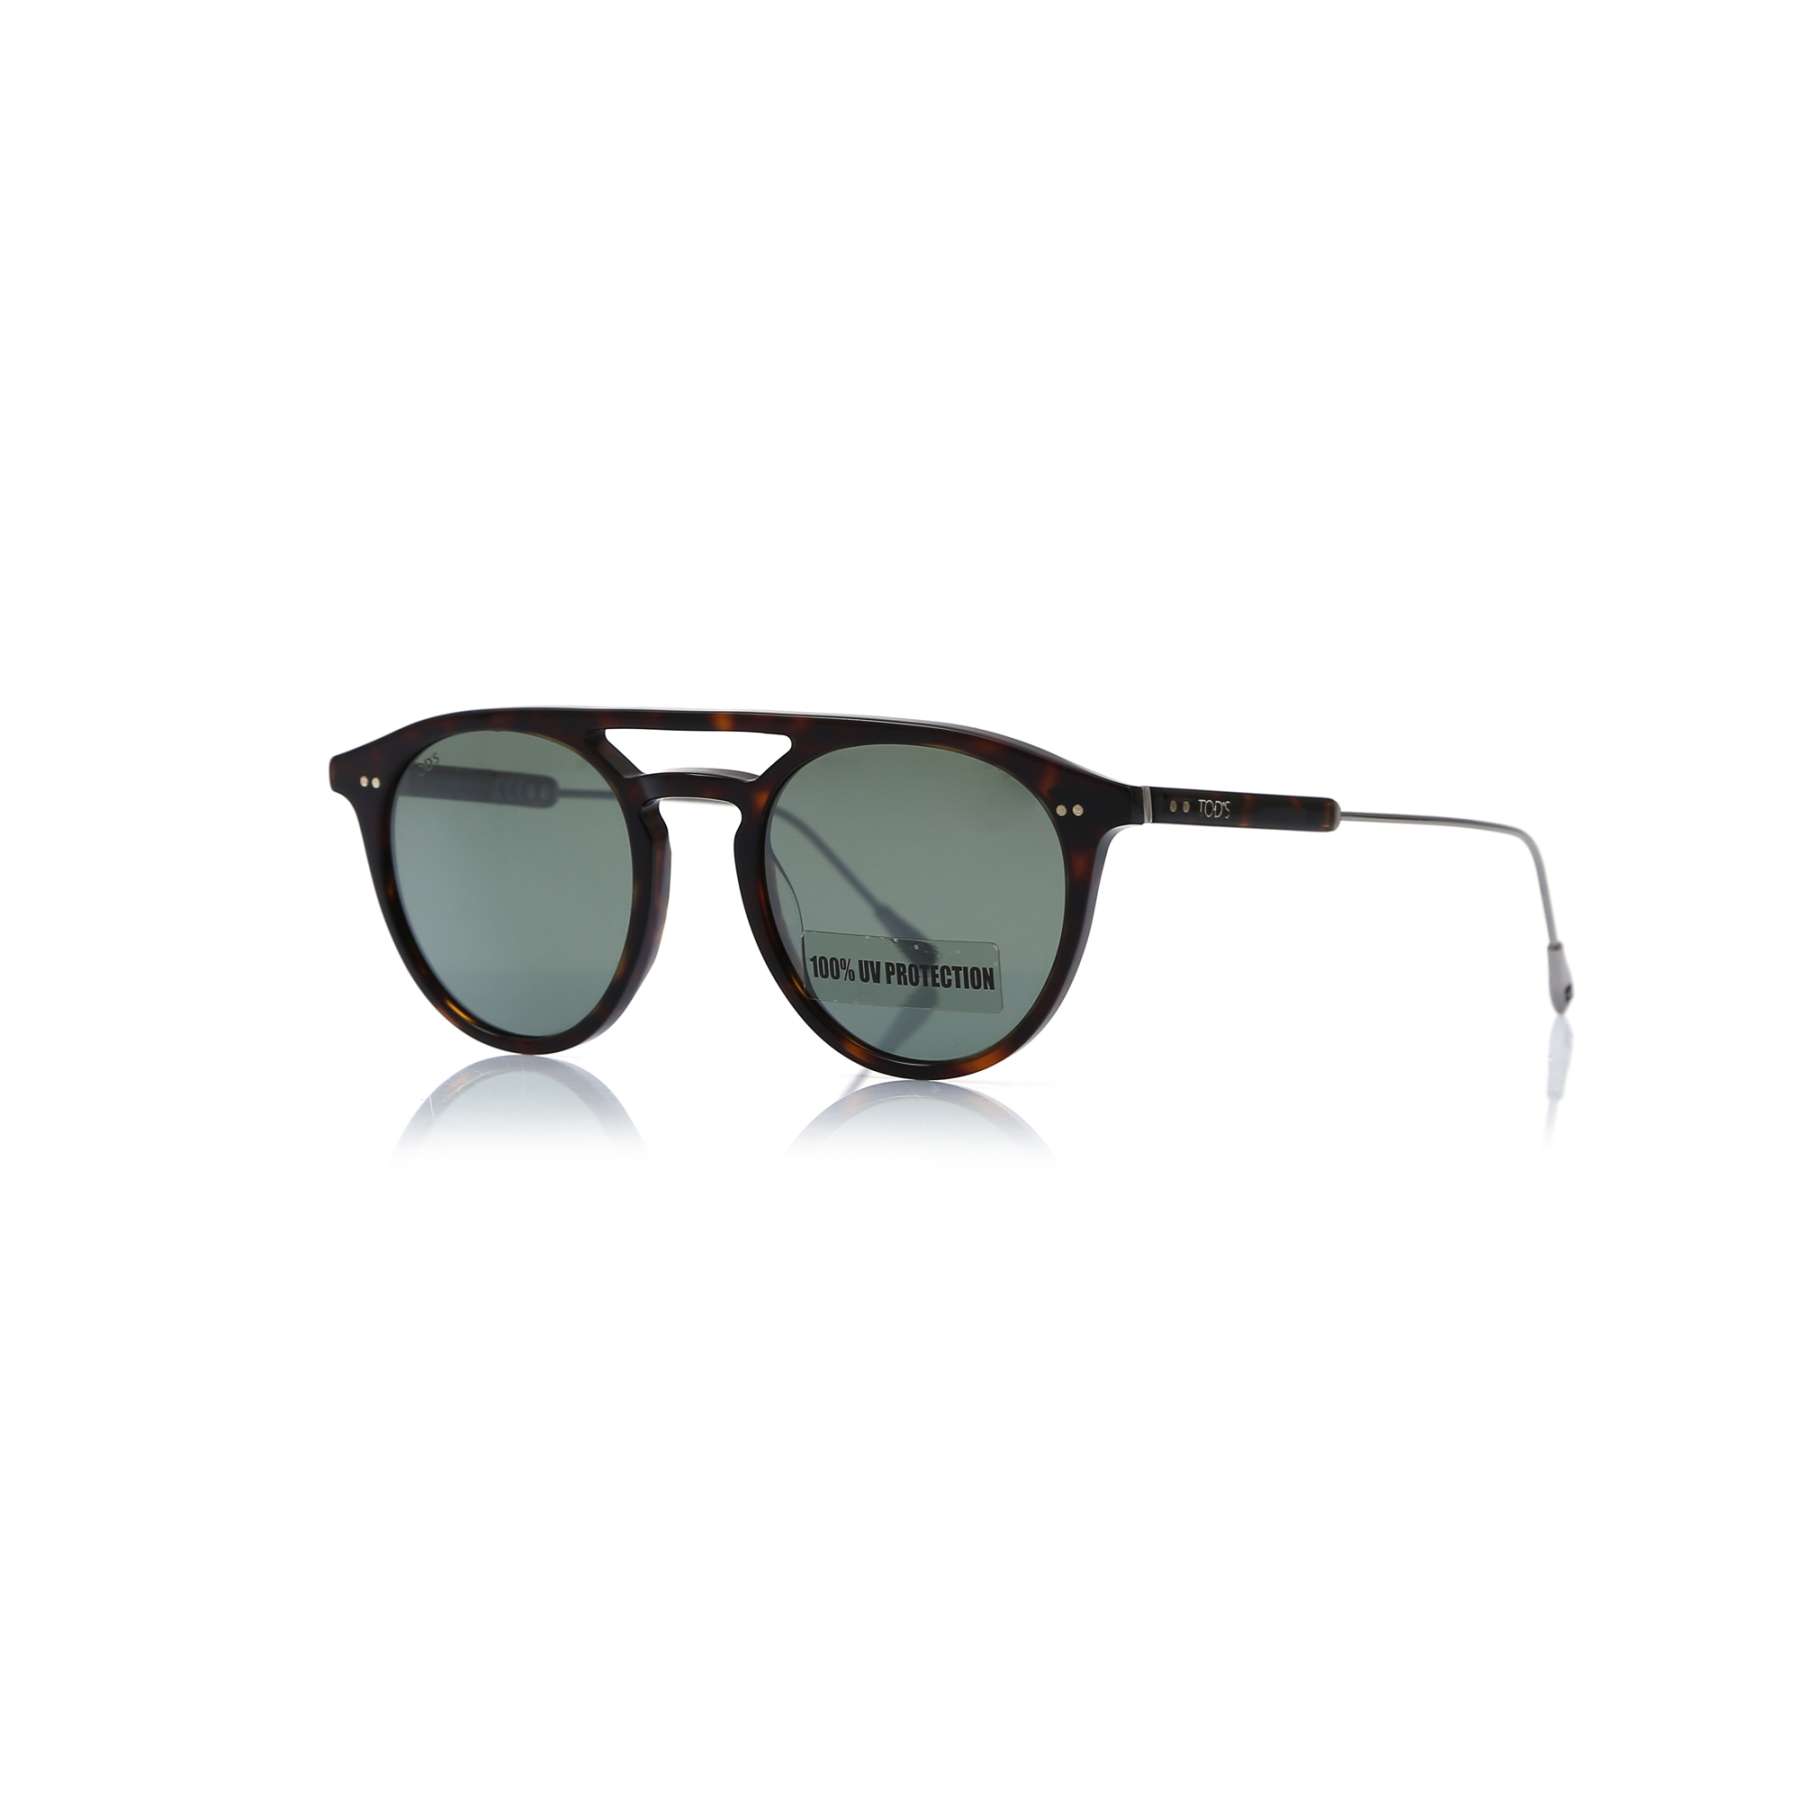 Unisex sunglasses to 0219 52c bone Brown organic oval aval 49-20-145 tods